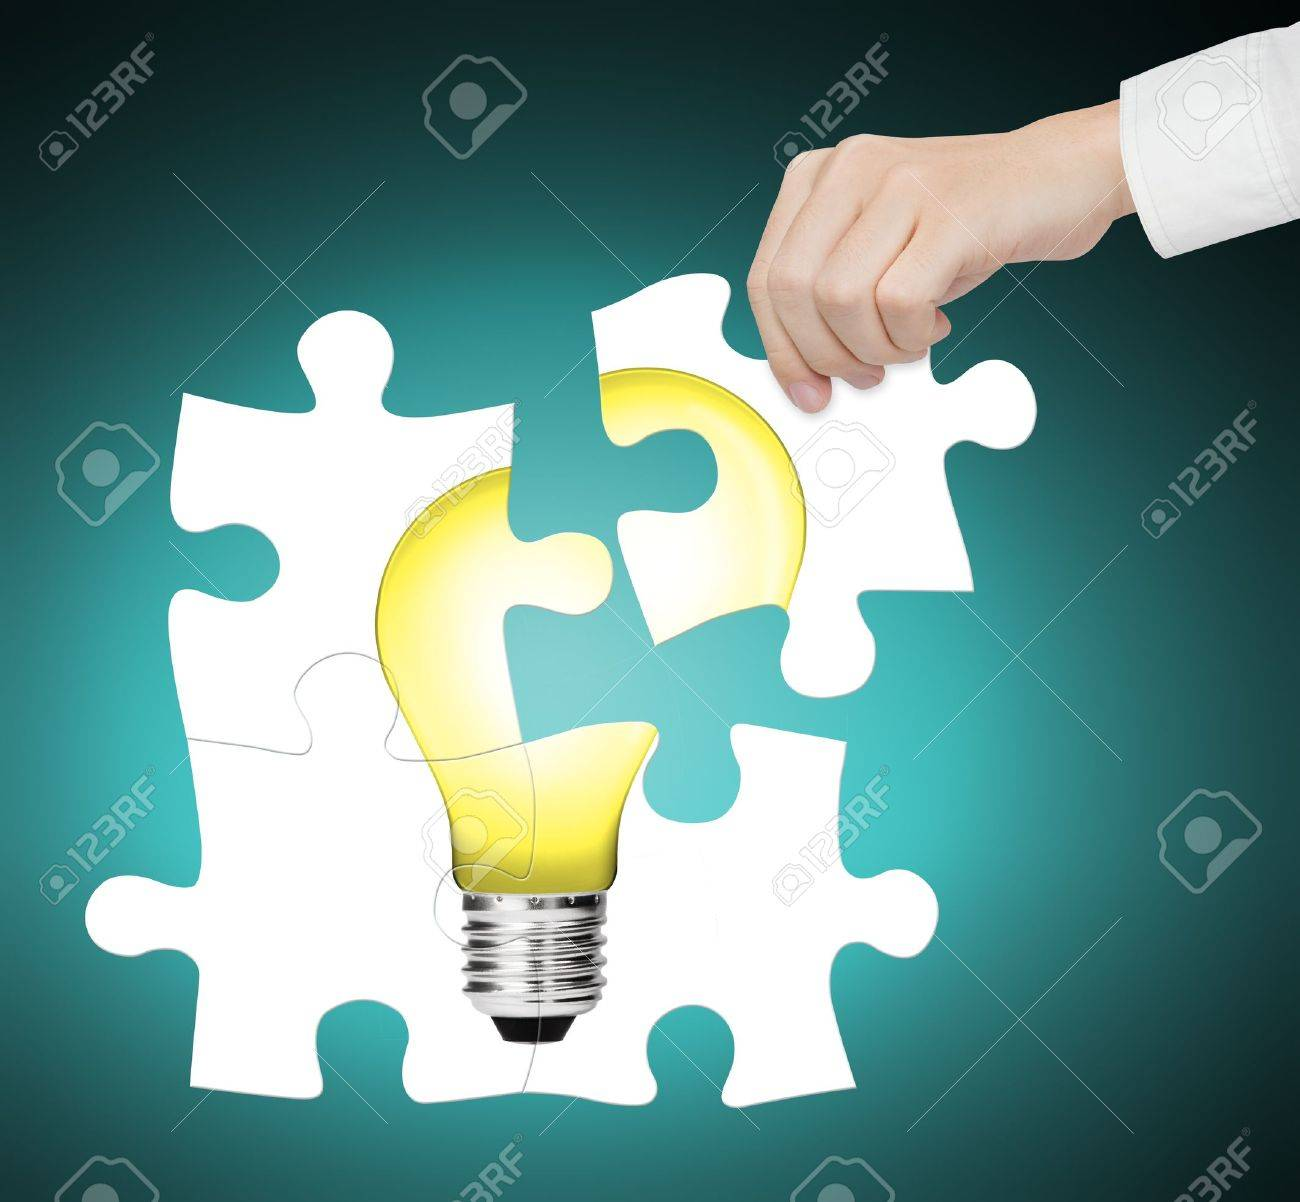 hand completing jigsaw puzzle of  light bulb, sign of idea, innovation, creative, smart, vision, solution, energy, electric etc. Stock Photo - 13549955